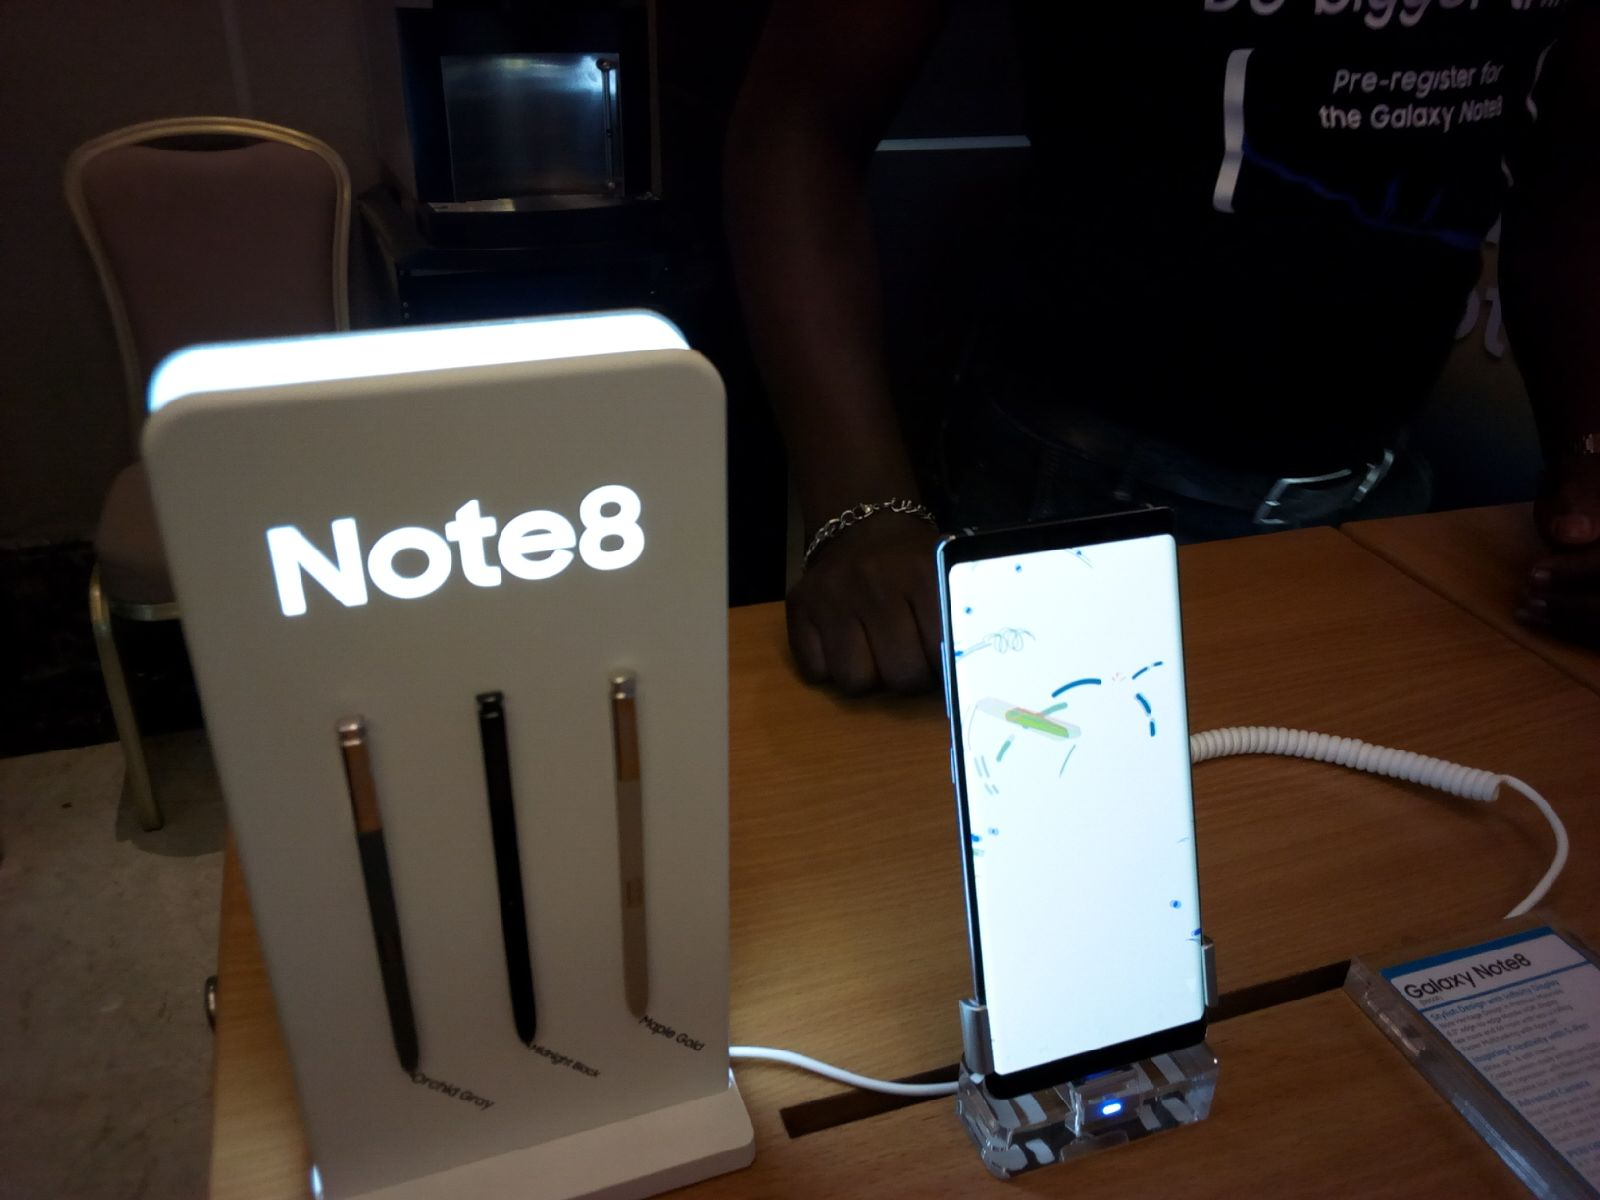 Samsung: Will Note 8 Become Another Dissapointment?